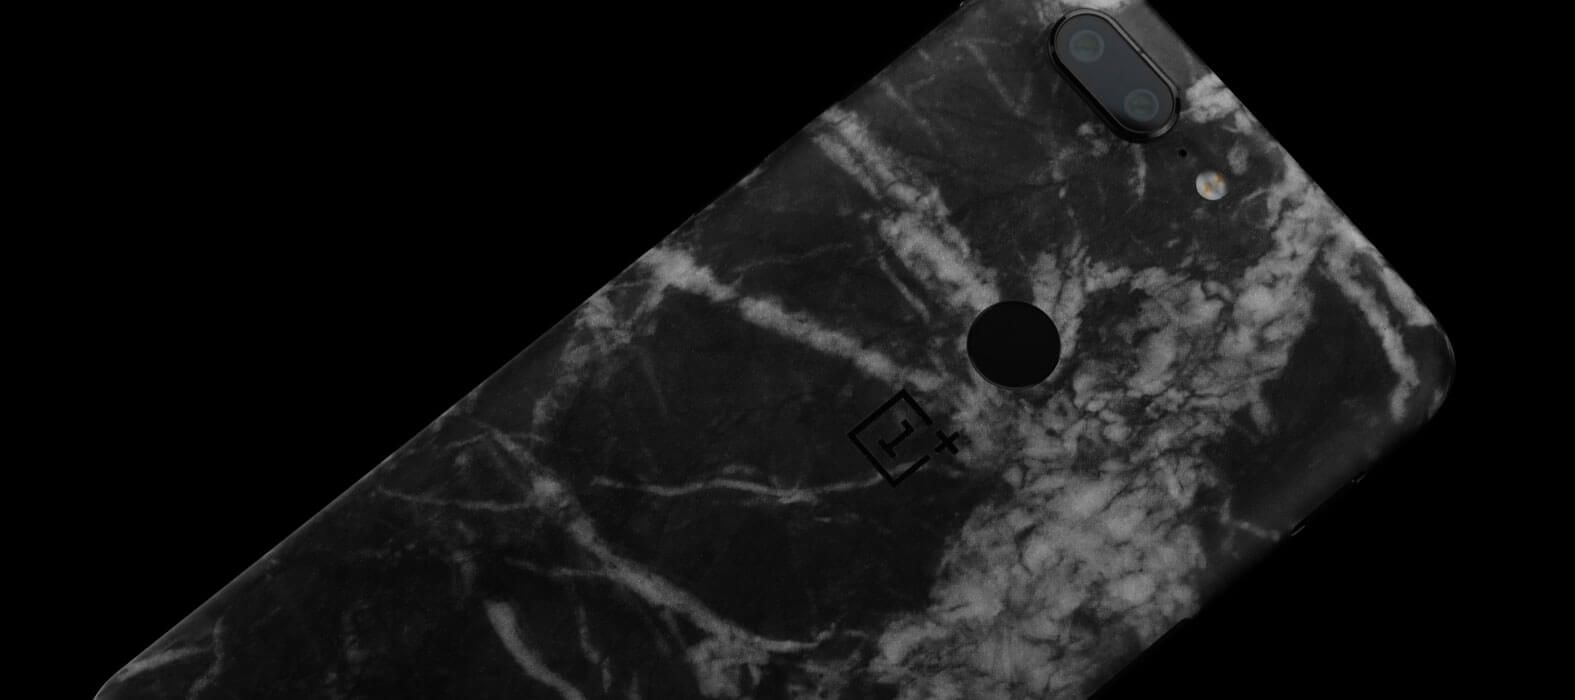 OnePlus 5T Skins, Decals, Wraps - Black Marble